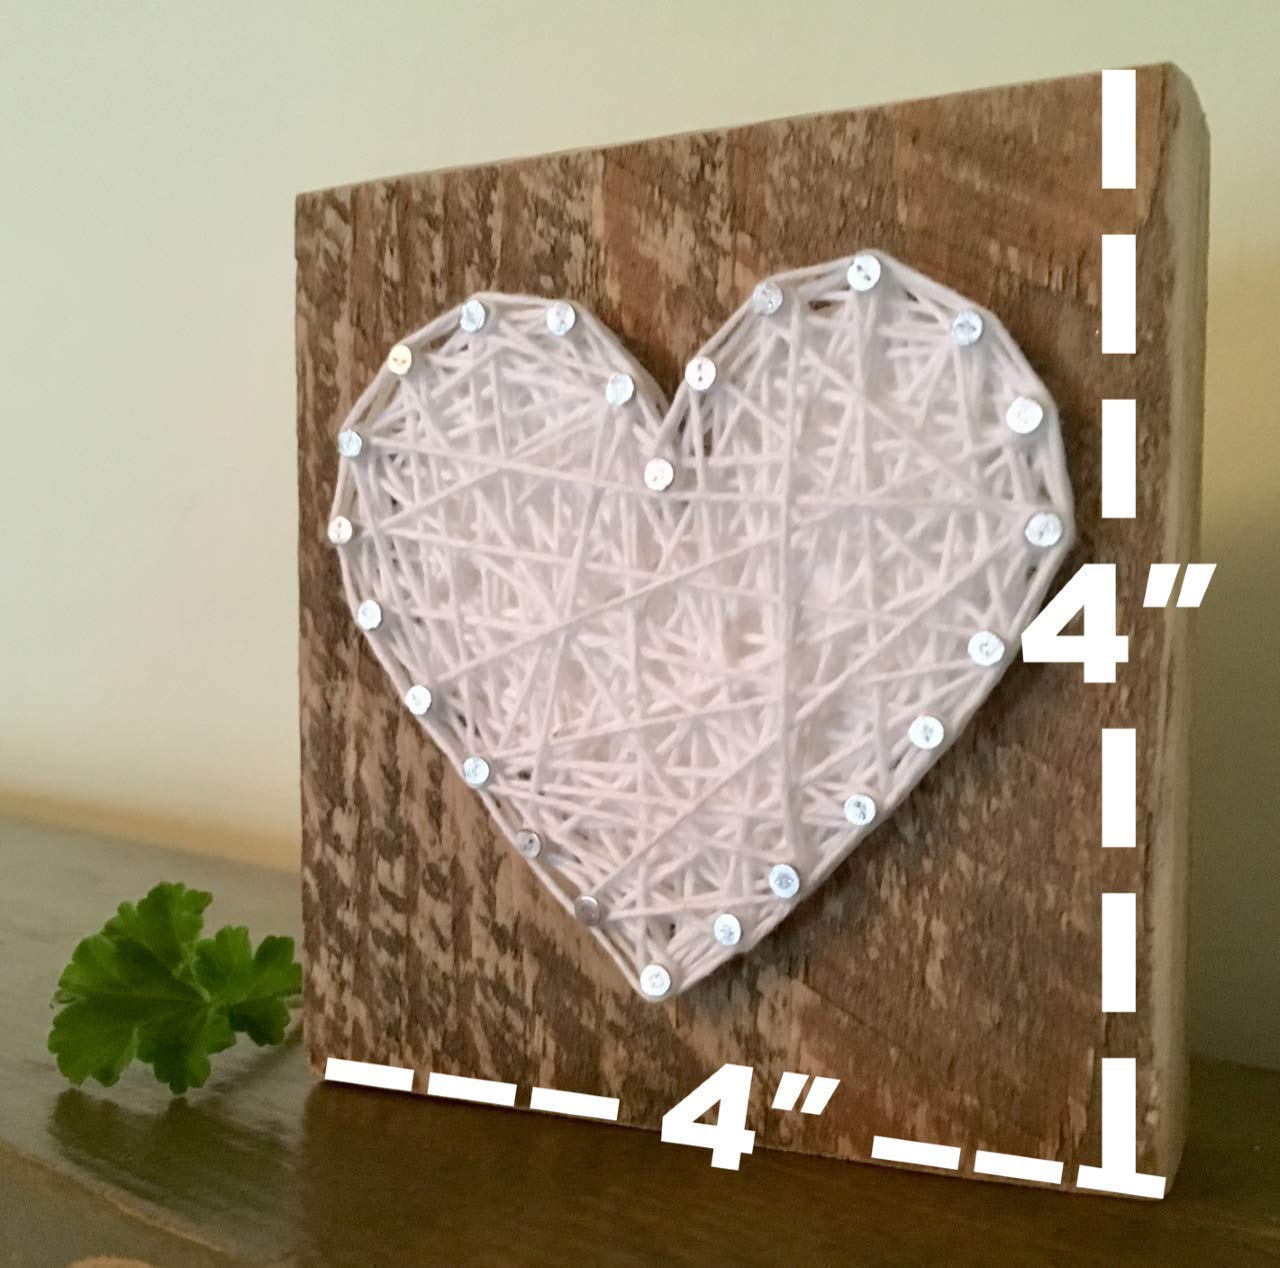 Sweet small wooden White string art heart gift. Heart sign. Perfect holiday decoration, home accents, Wedding favors, Anniversary, nursery decoration and just because gifts by Nail it Art.